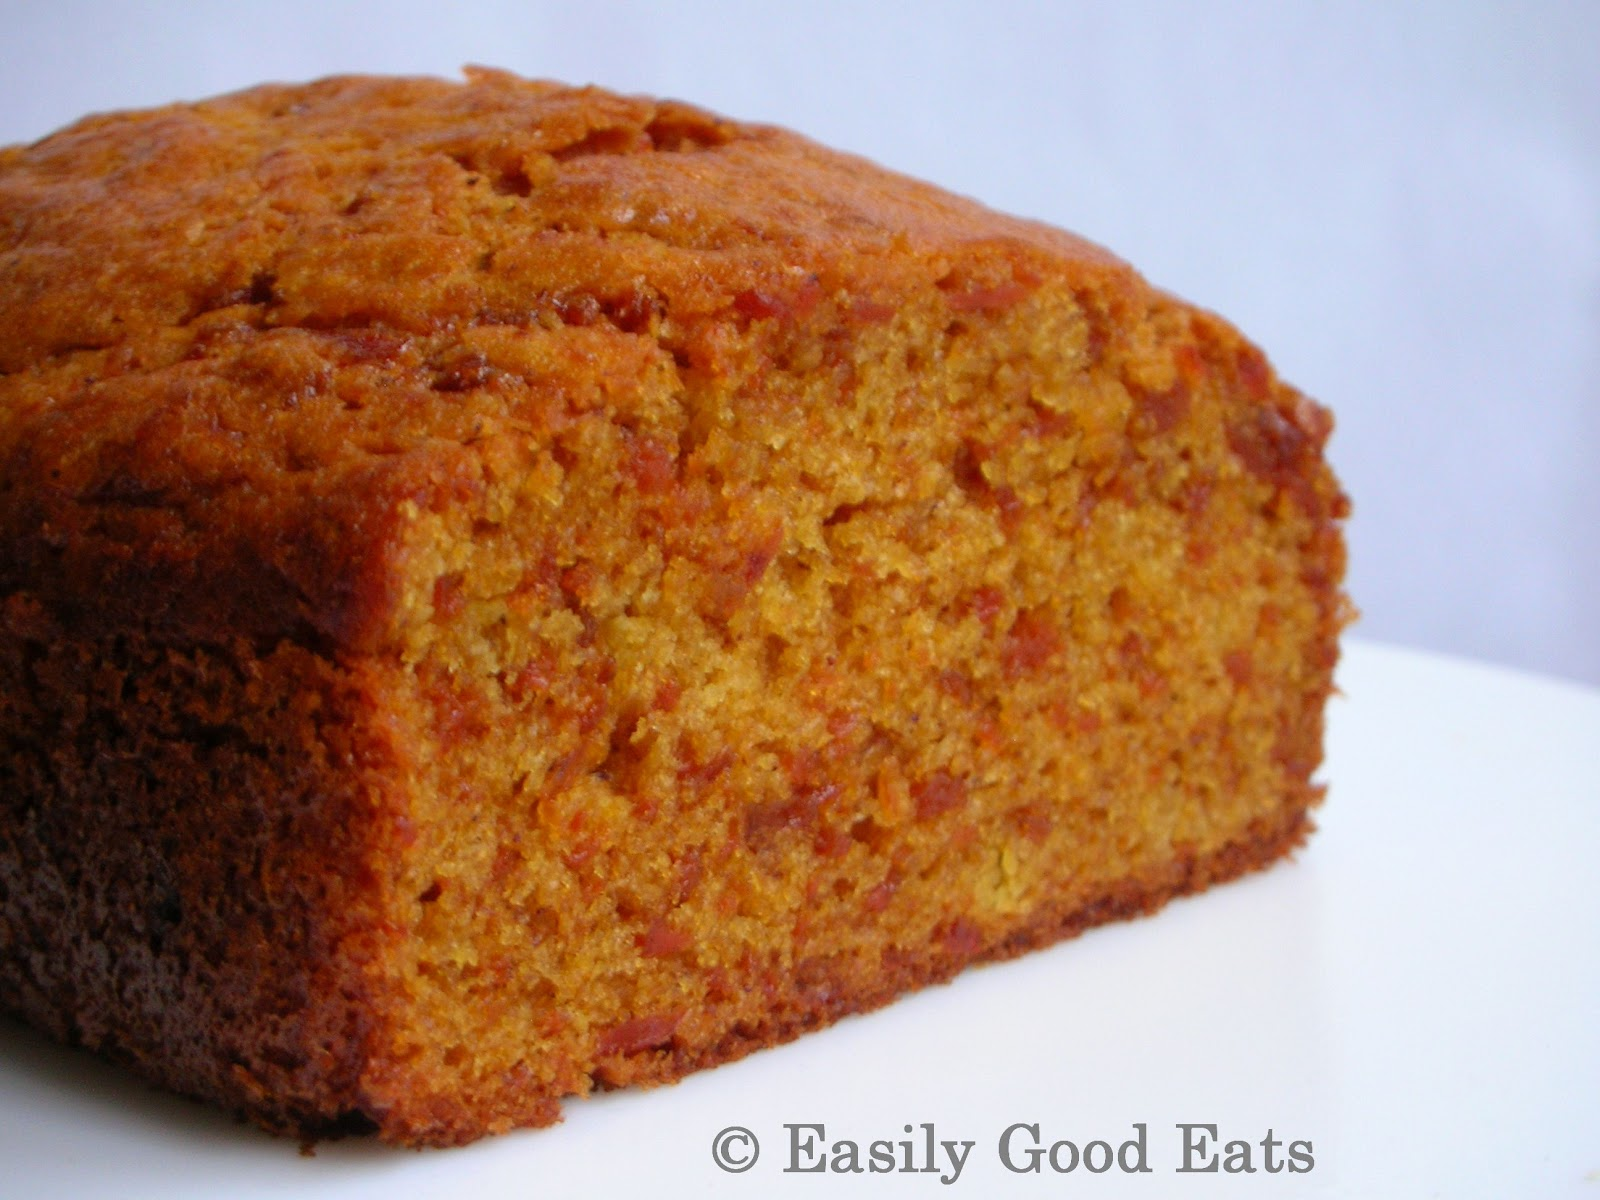 Easily Good Eats: Butterscotch (Caramelised) Carrot Cake Recipe